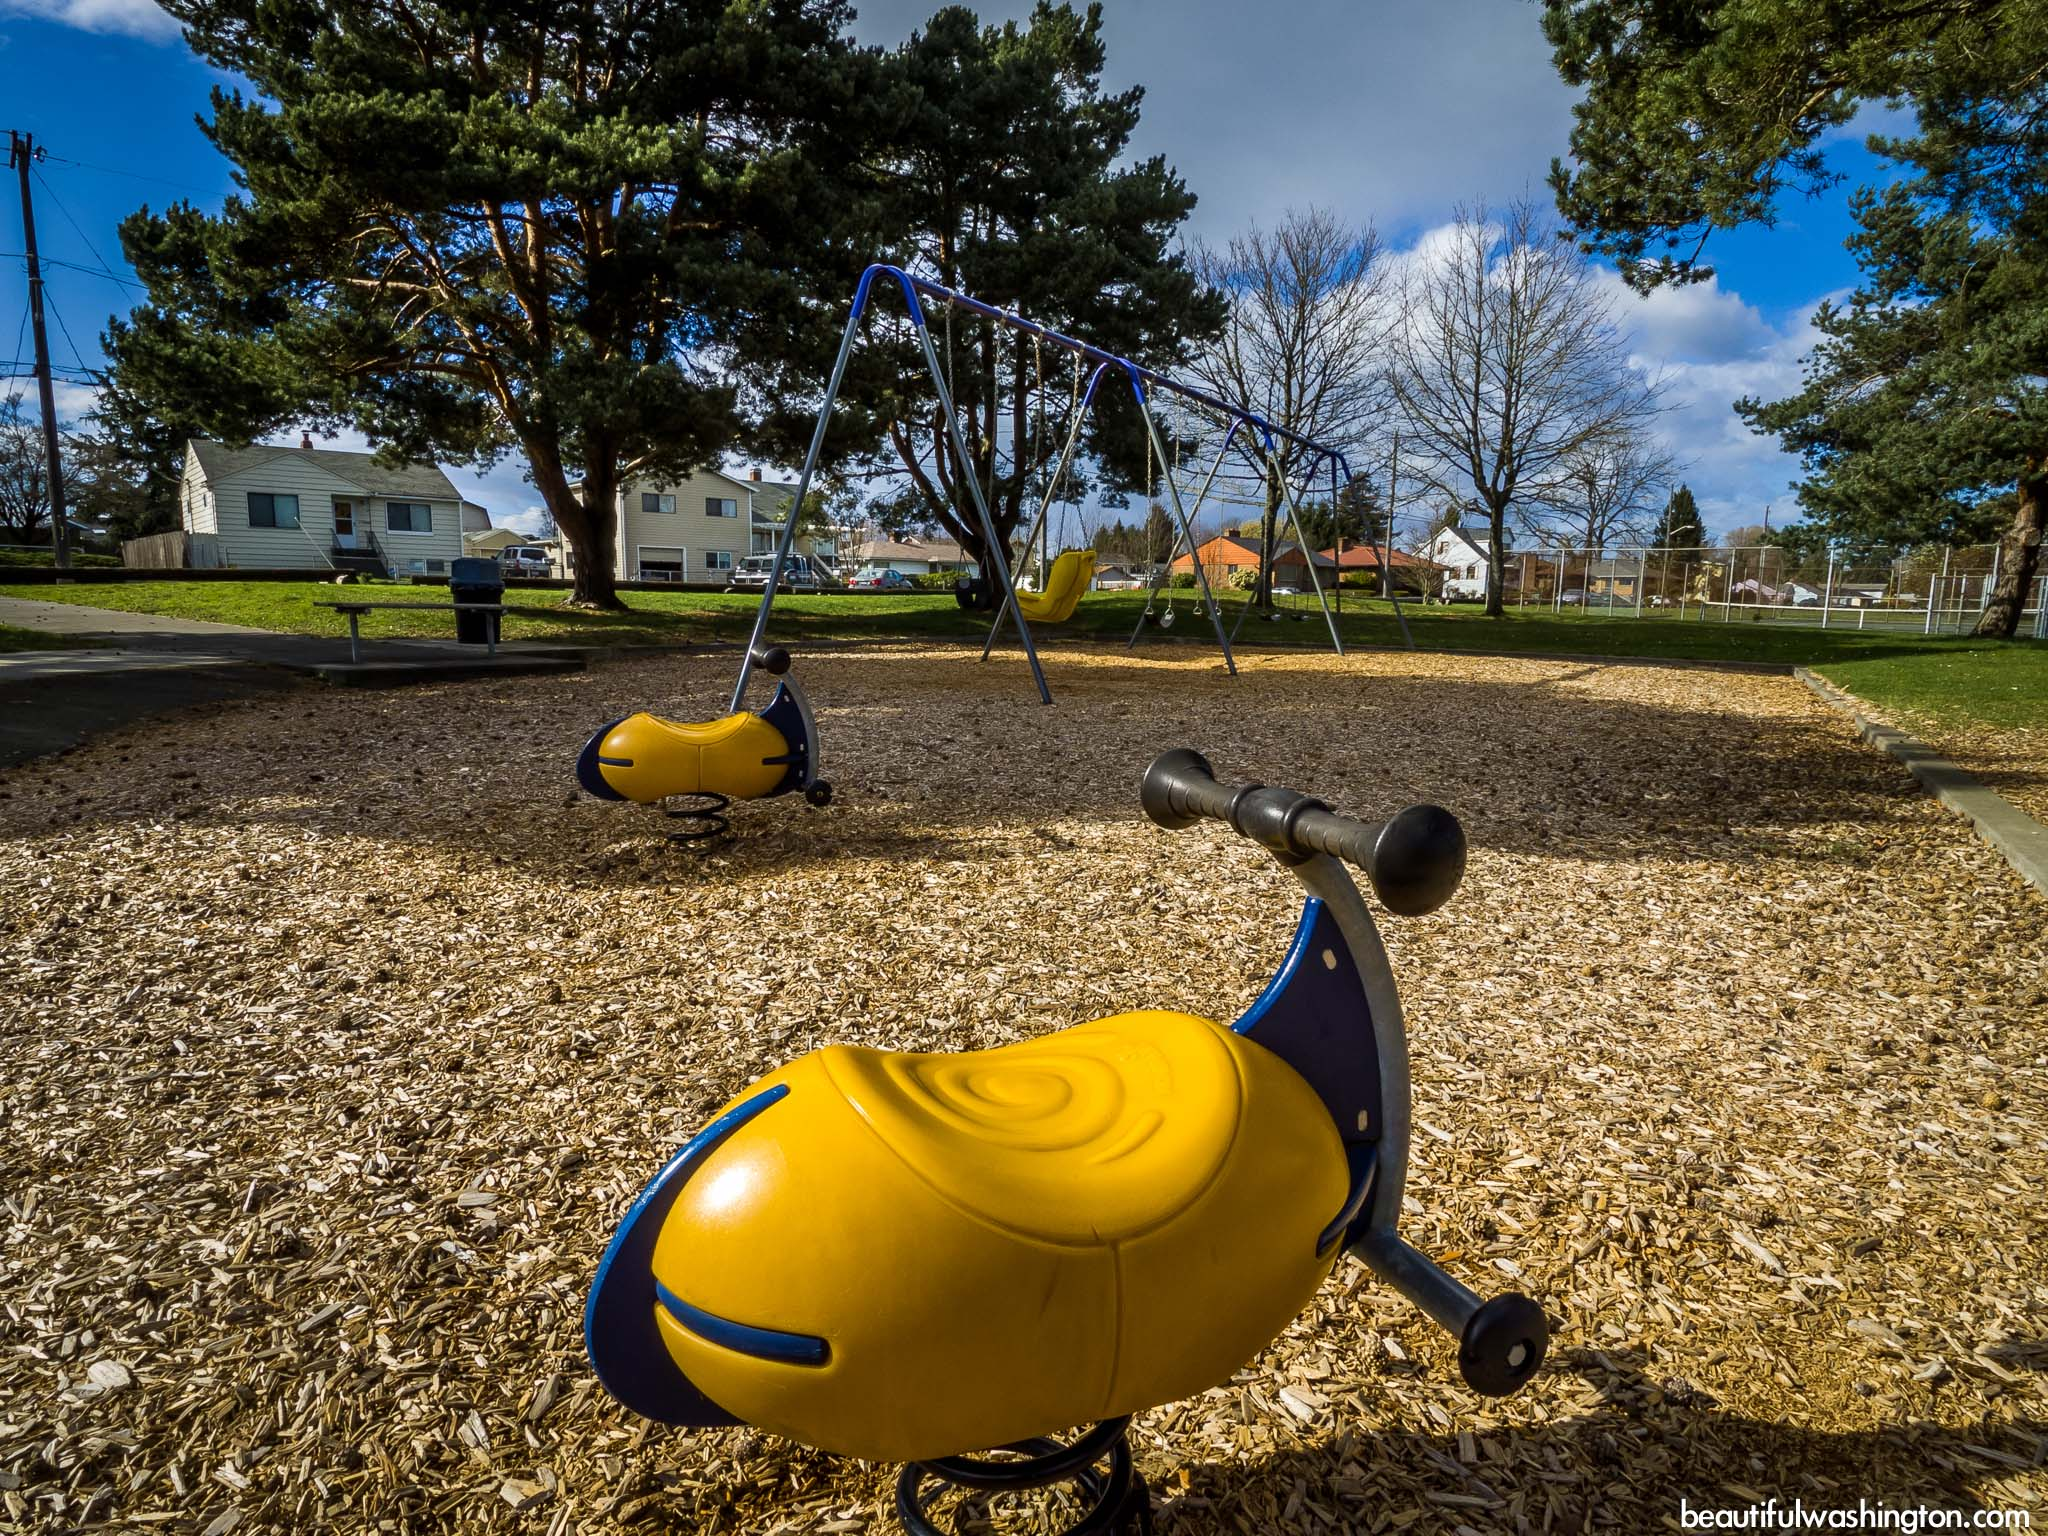 Photo from King County, Seattle, Riverview Playfield Park